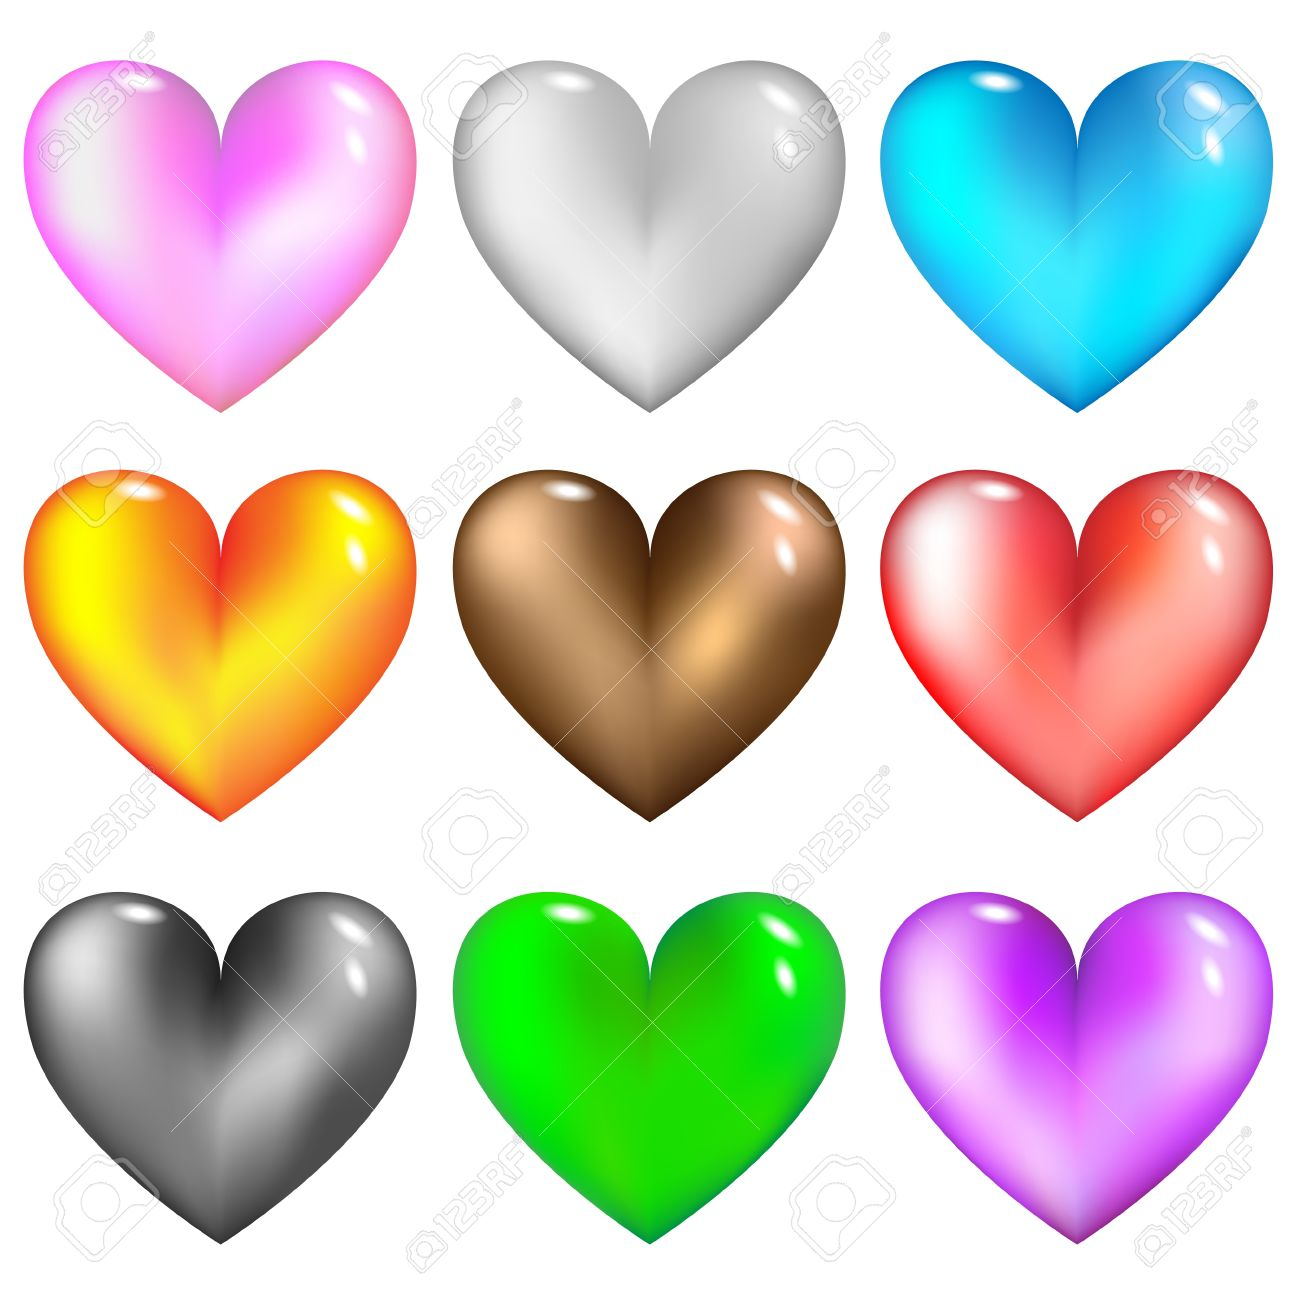 Colorful glass hearts icon for web.Vector set. Stock Vector - 11648216